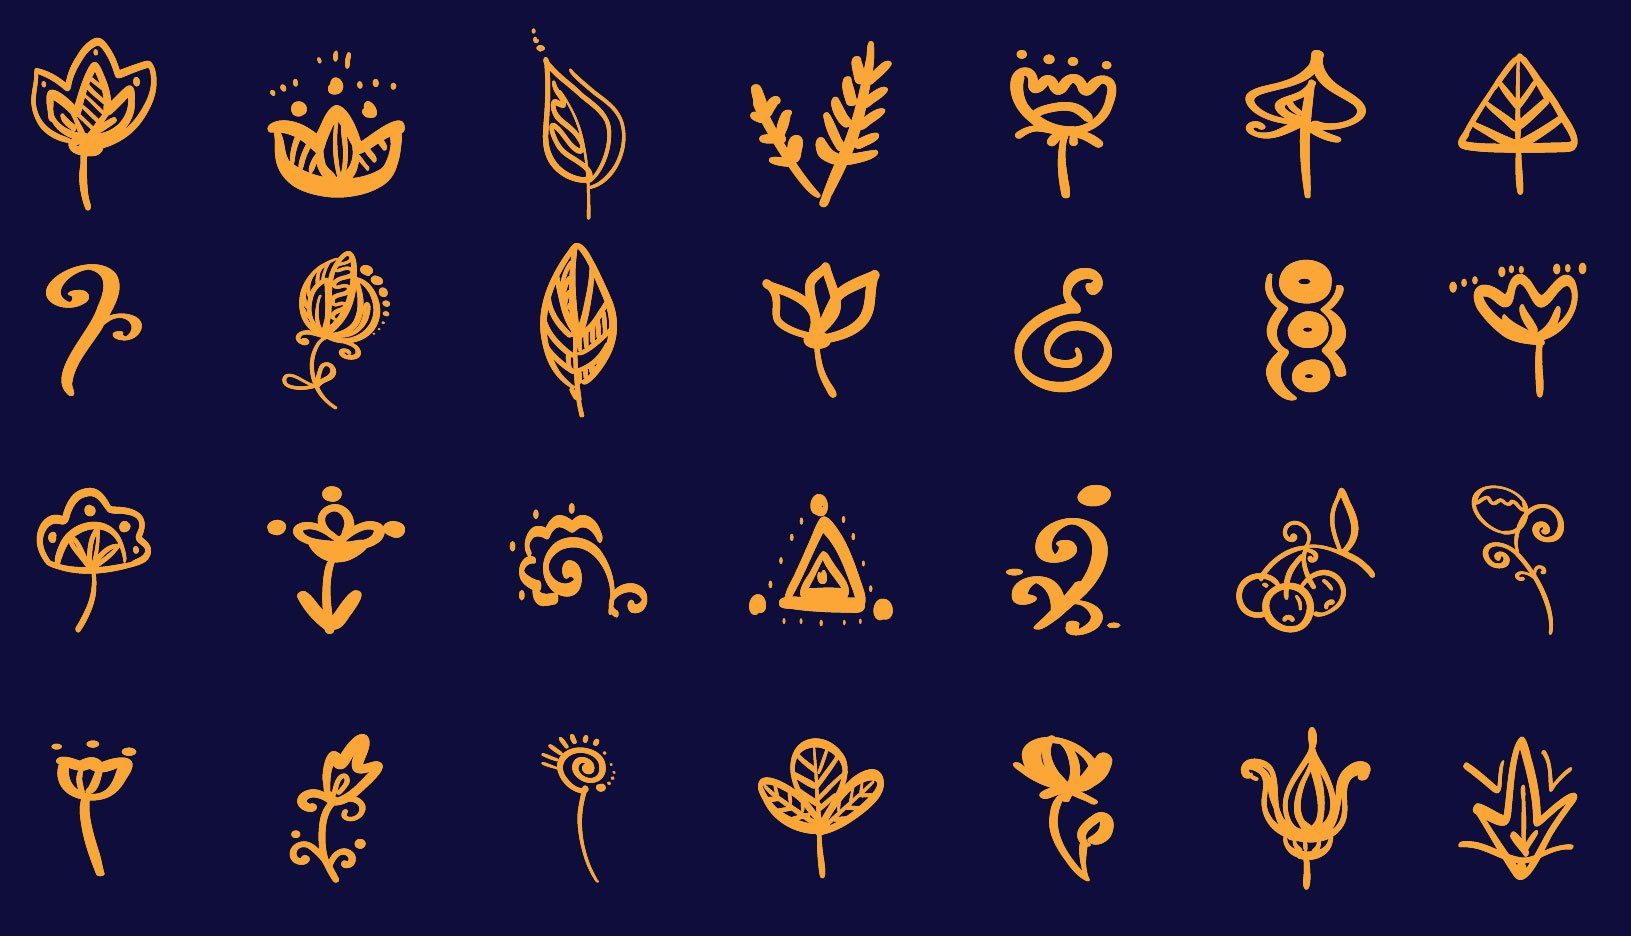 28 Floral inspired simple vector elements preview.